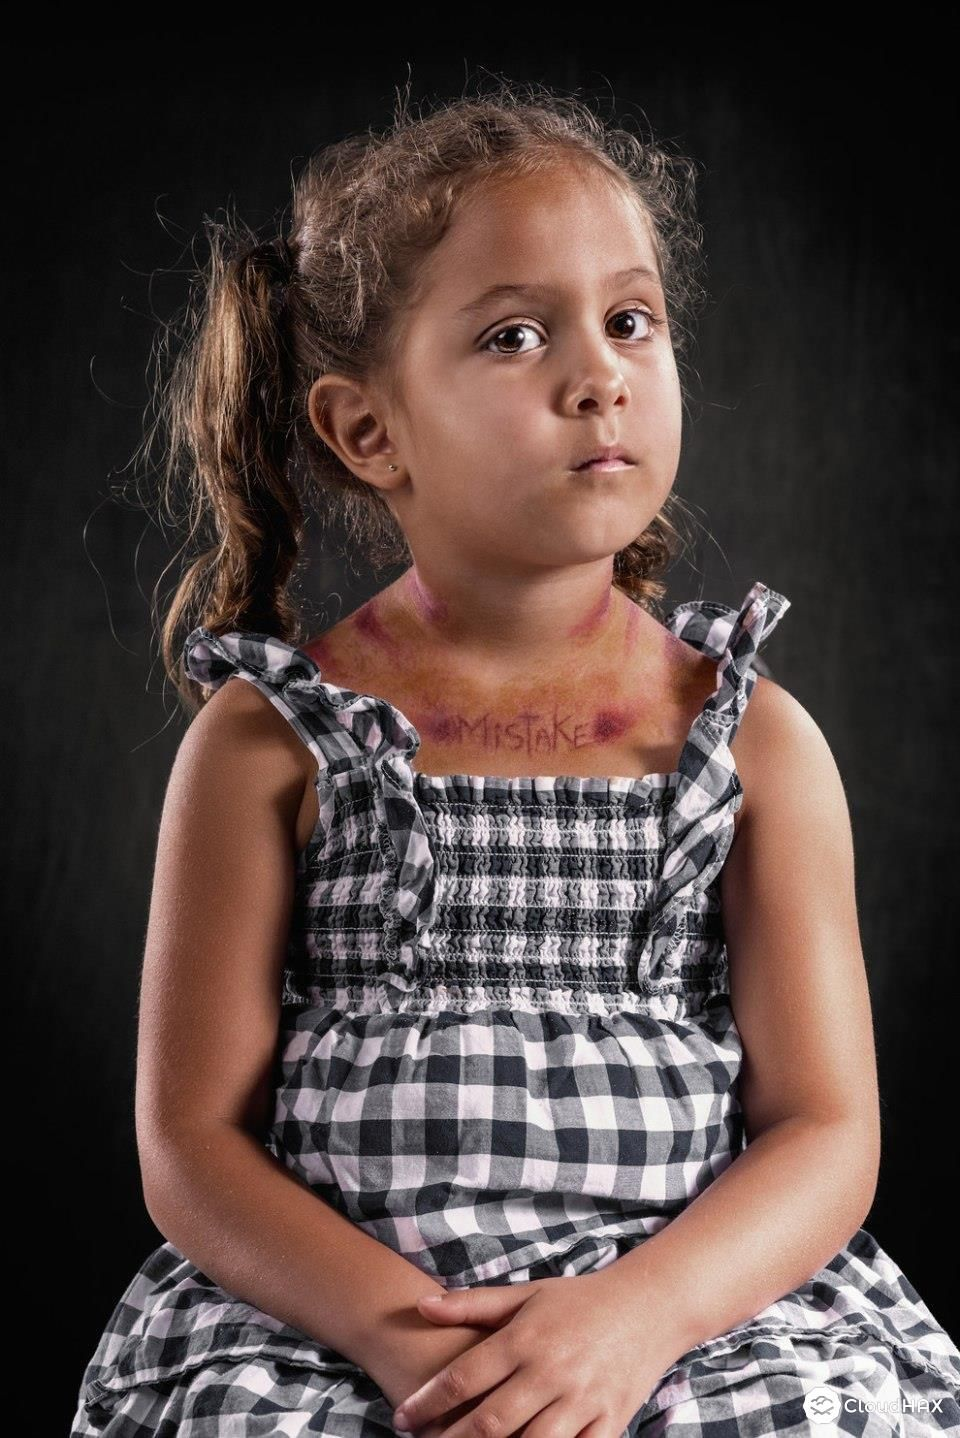 Extremely Powerful Photo Project Shows The Effects Of Verbal Abuse - Extremely powerful photo project shows effects verbal abuse